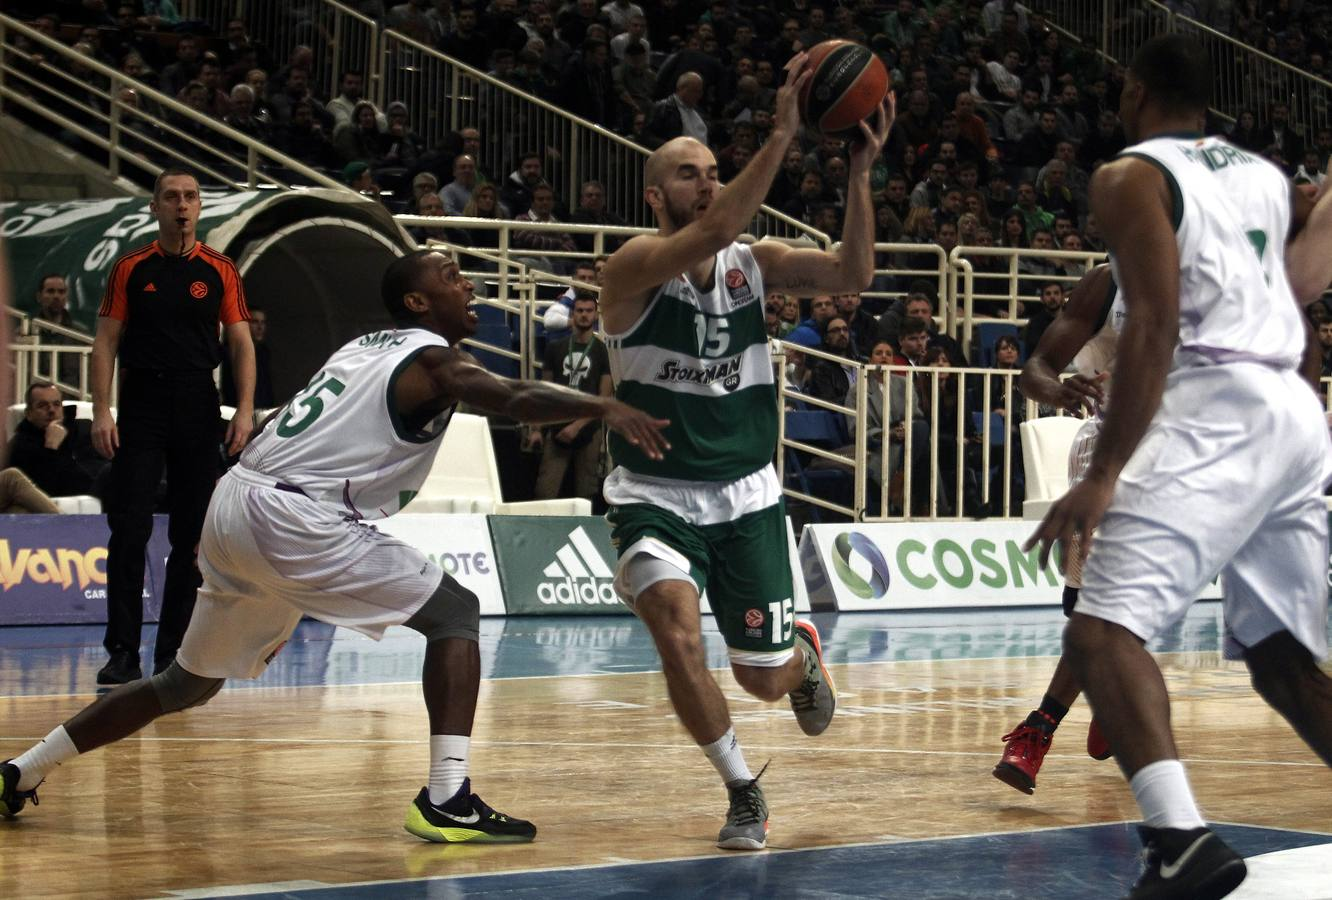 El Panathinaikos-Unicaja, en fotos